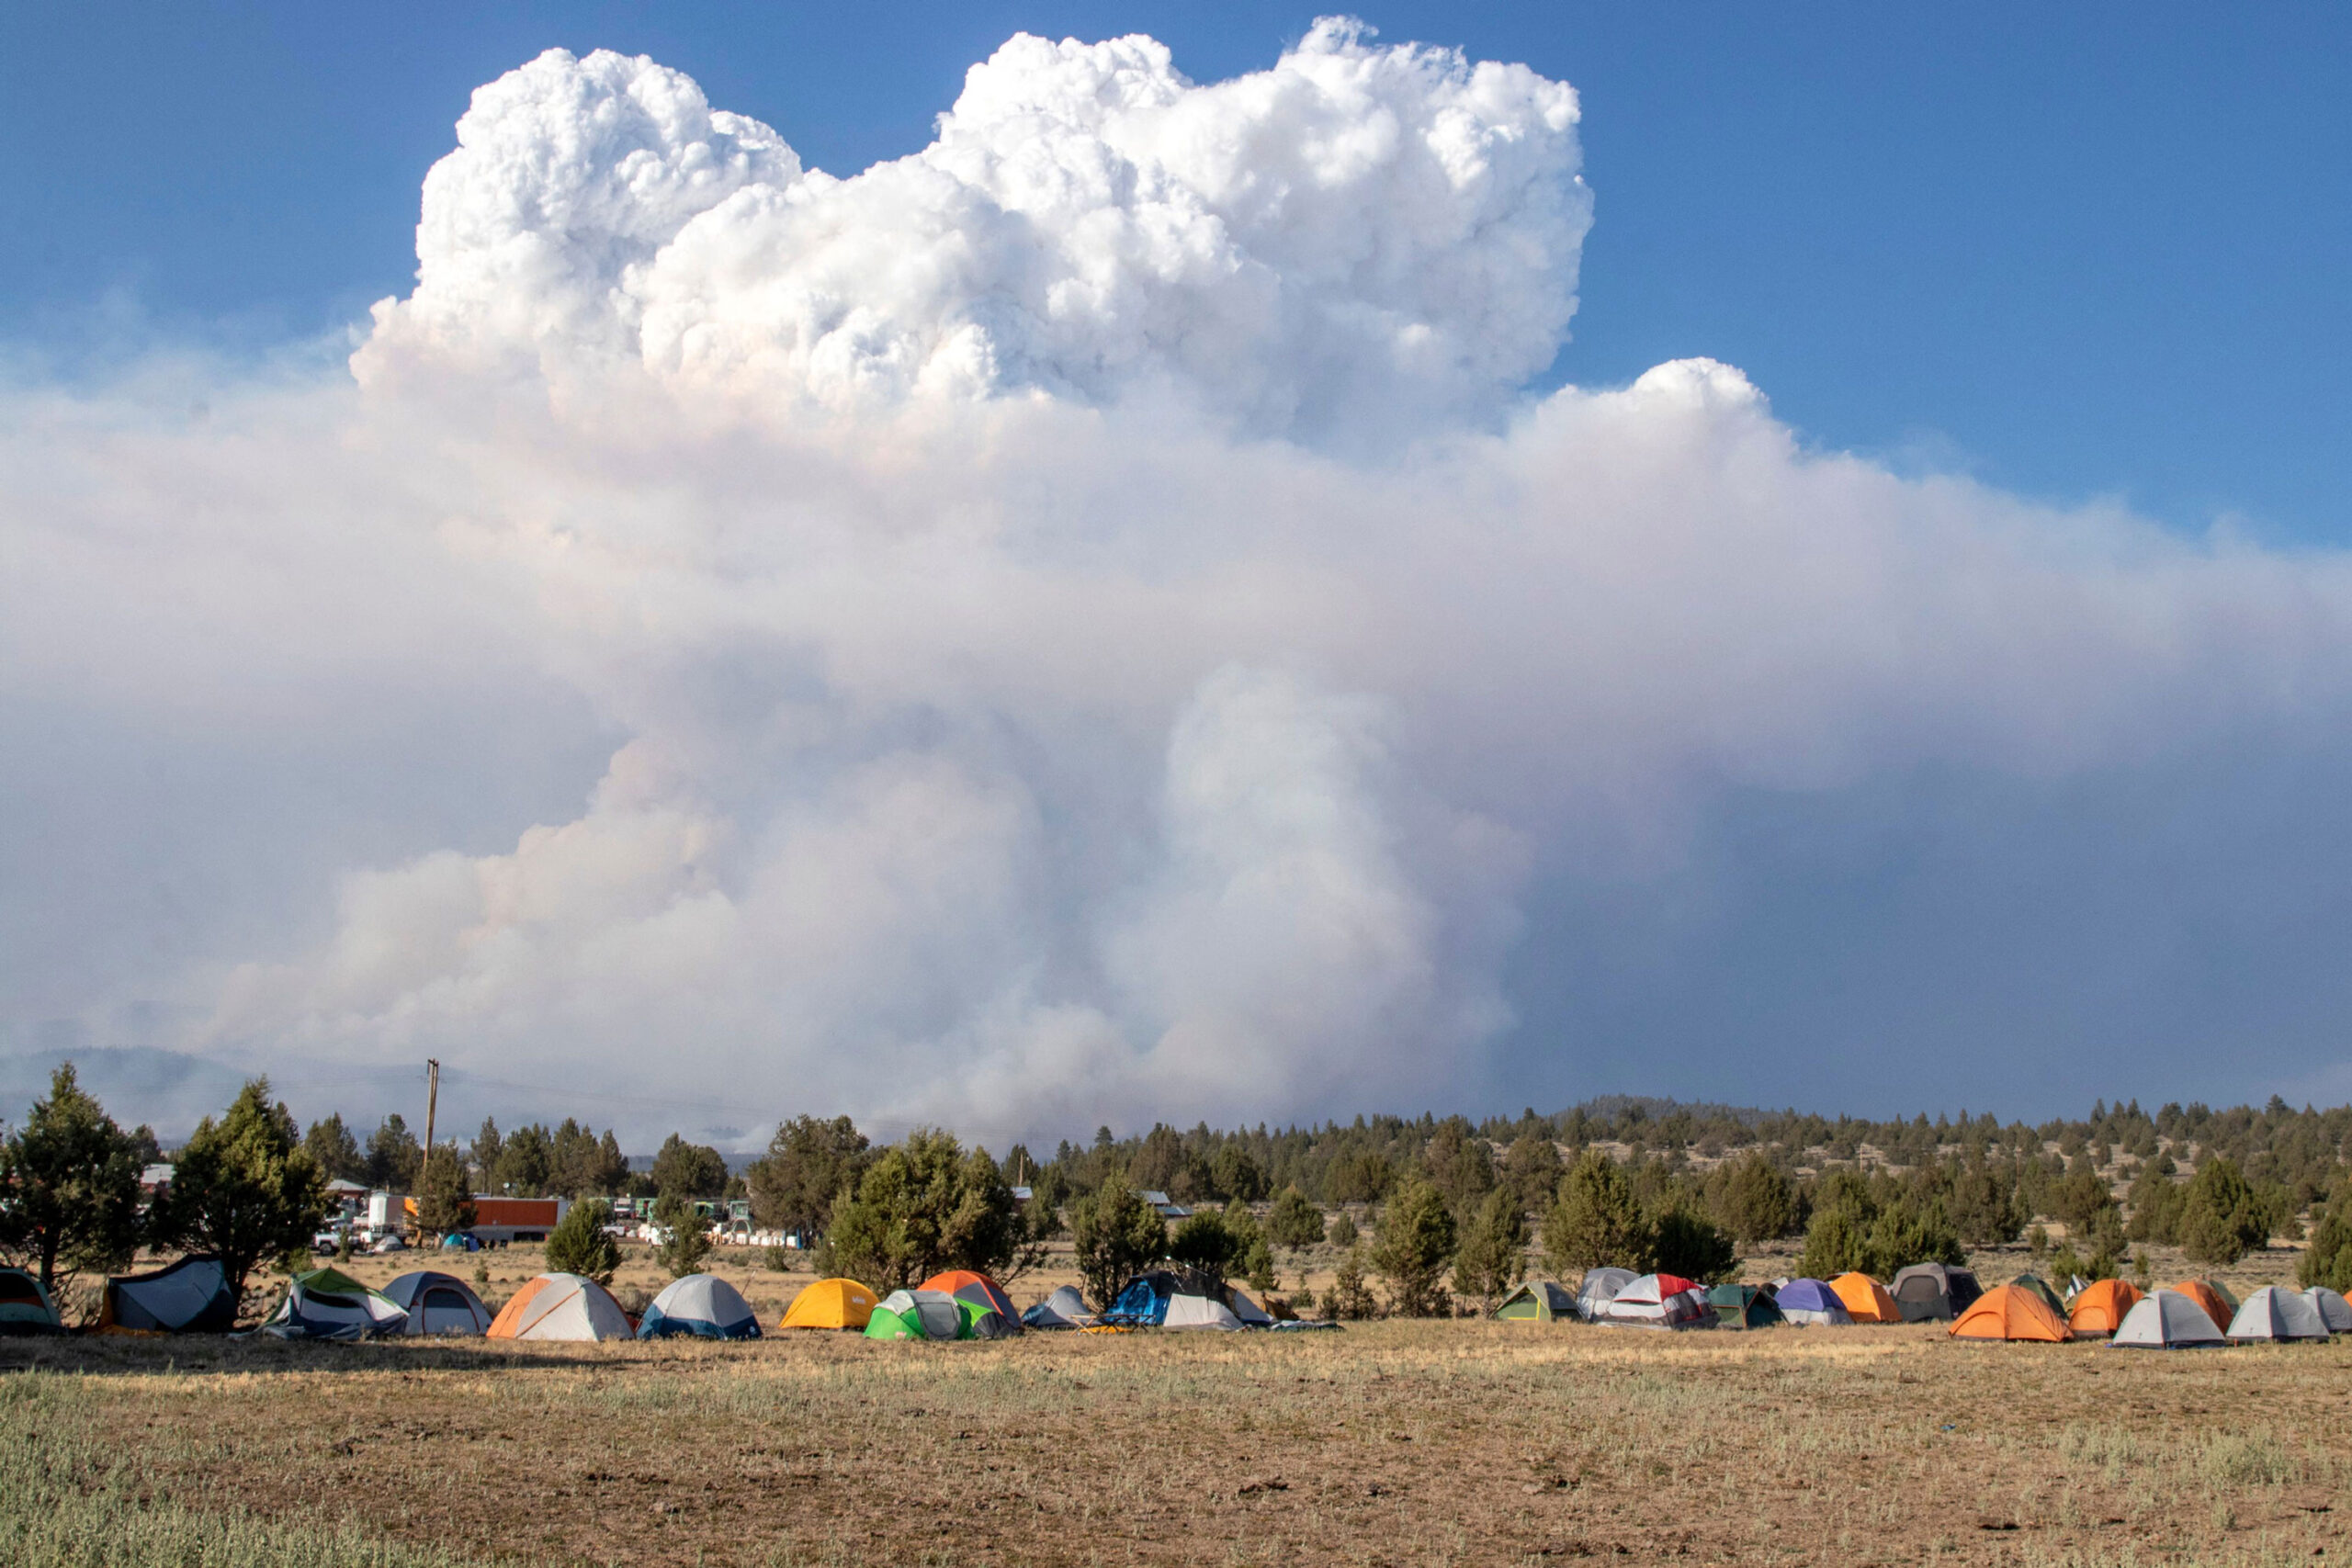 <i>Payton Bruni/AFP/Getty Images</i><br/>A pyrocumulus cloud caused by the Bootleg Fire drifts north of a firefighter operating base in Bly